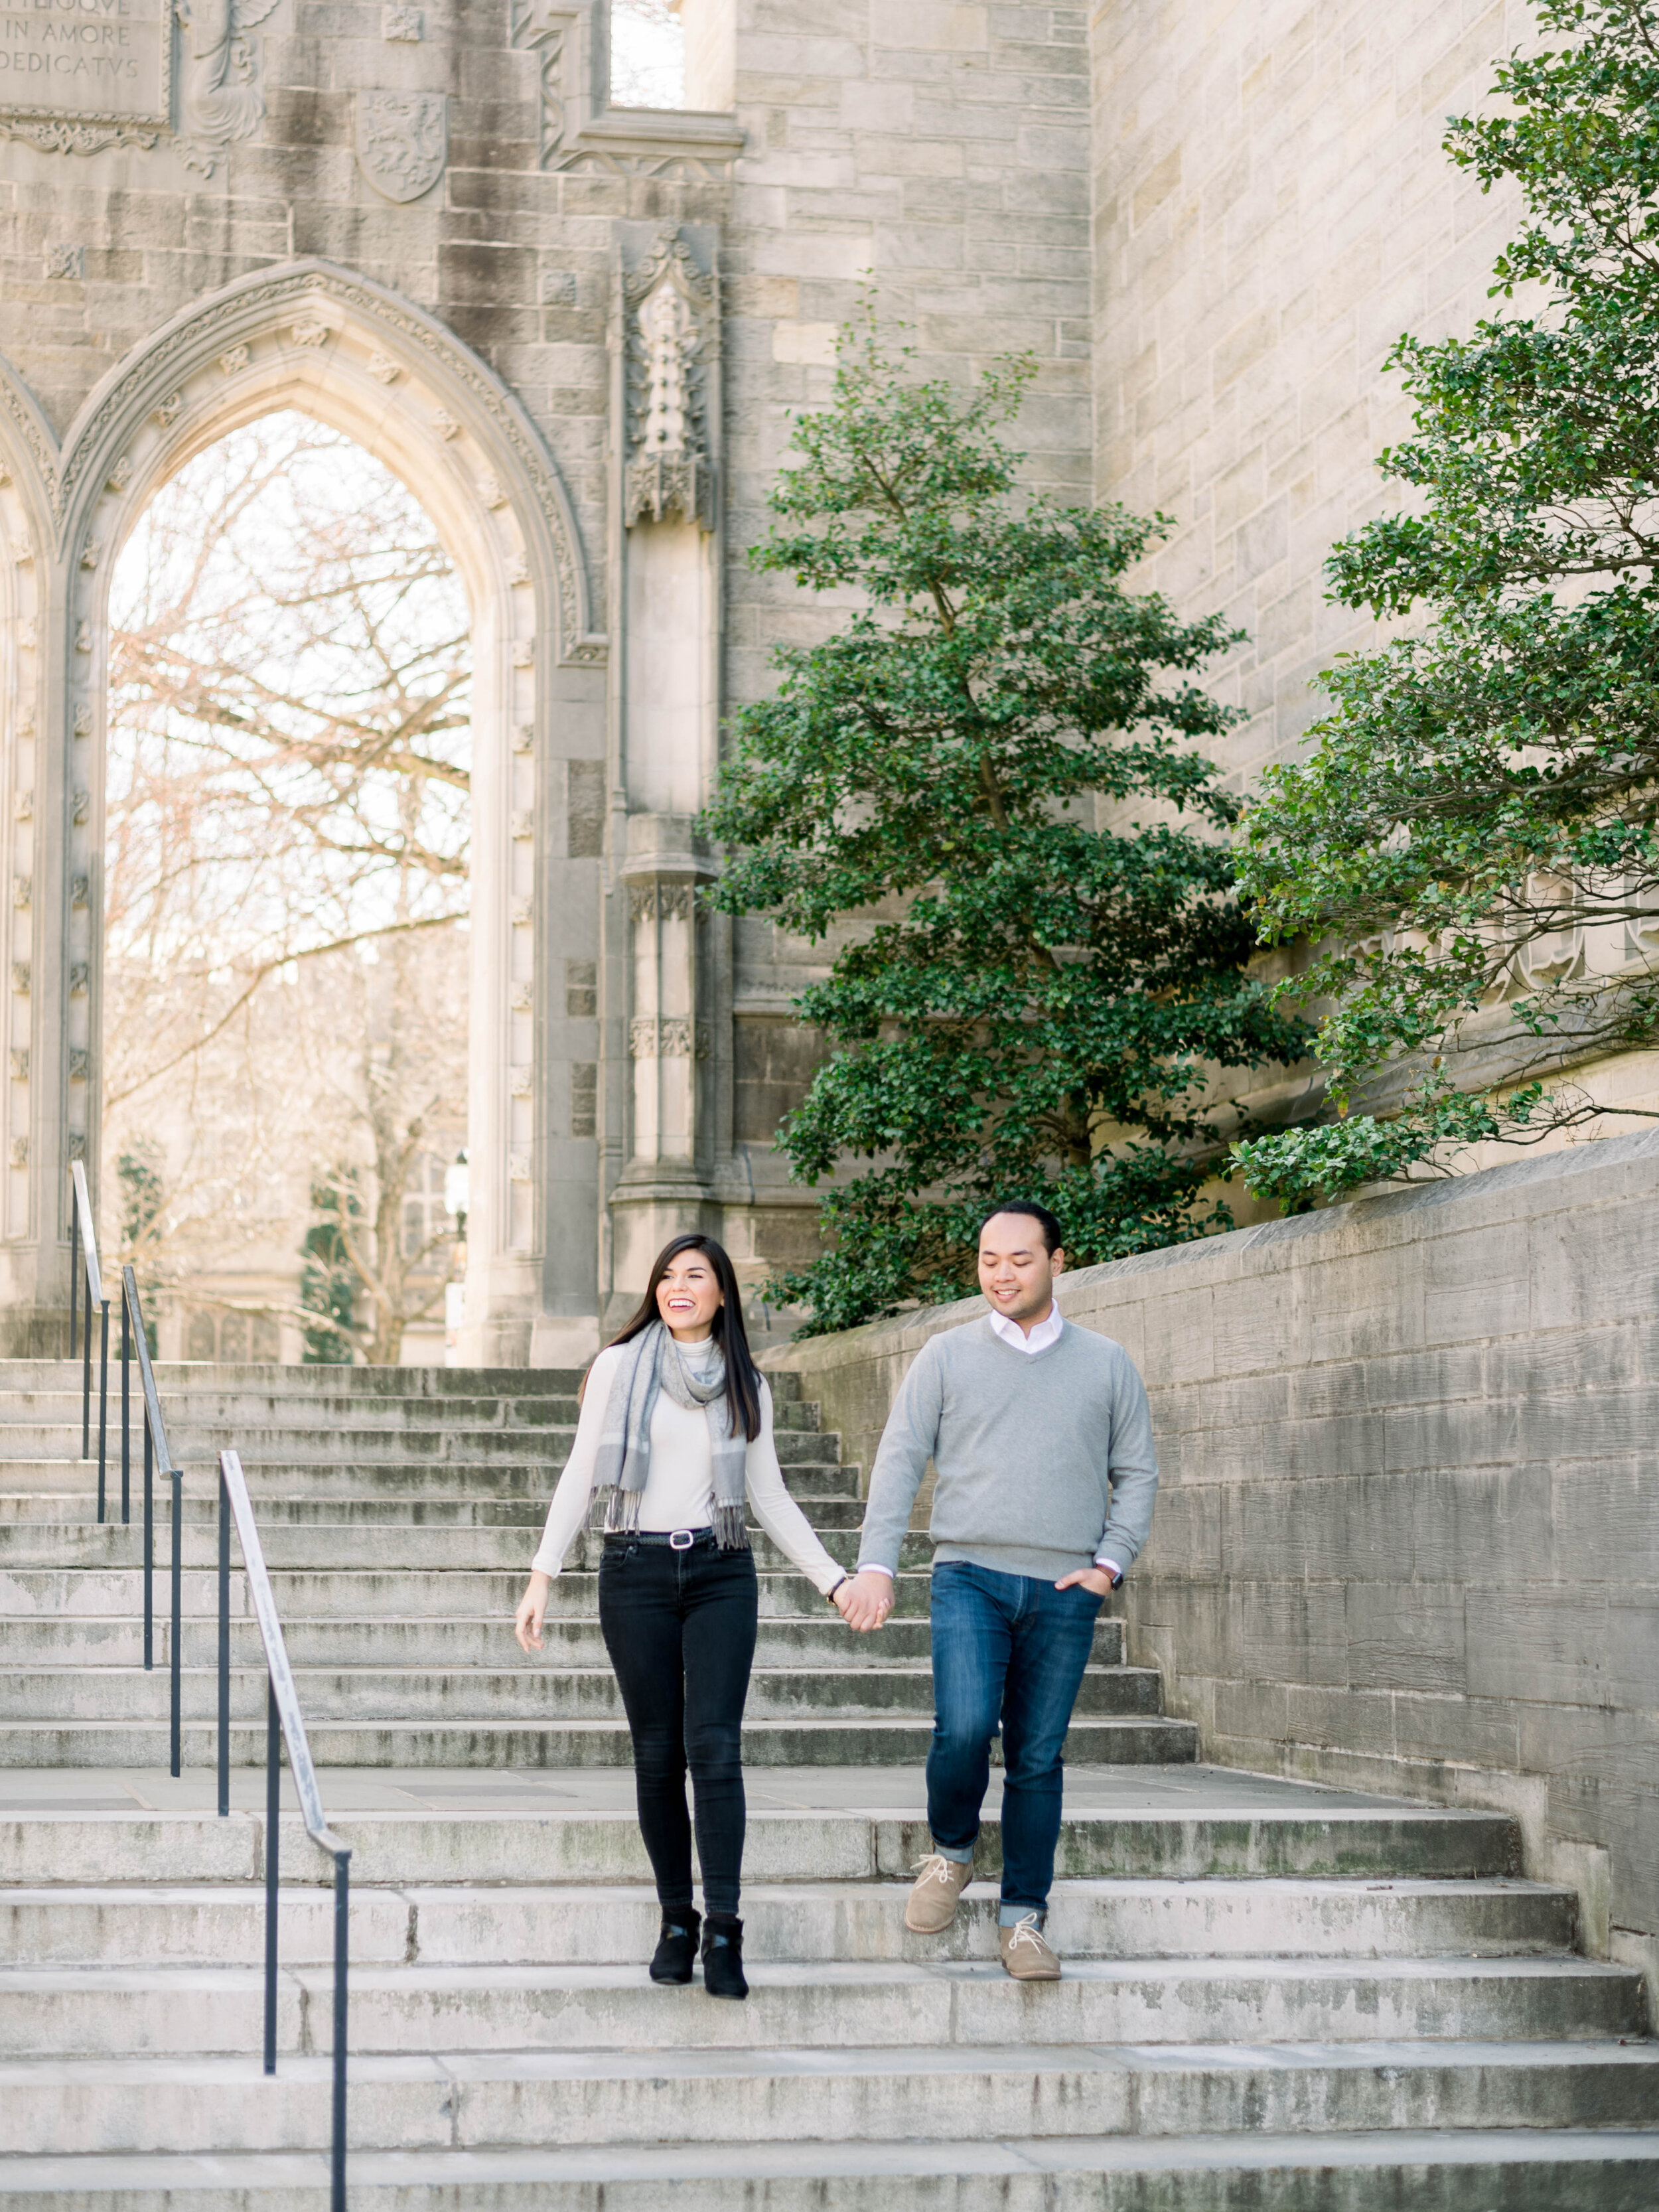 Outdoor lifestyle couples session with coffee, shopping in Princeton New Jersey on Princeton University Campus by Liz Andolina Photography